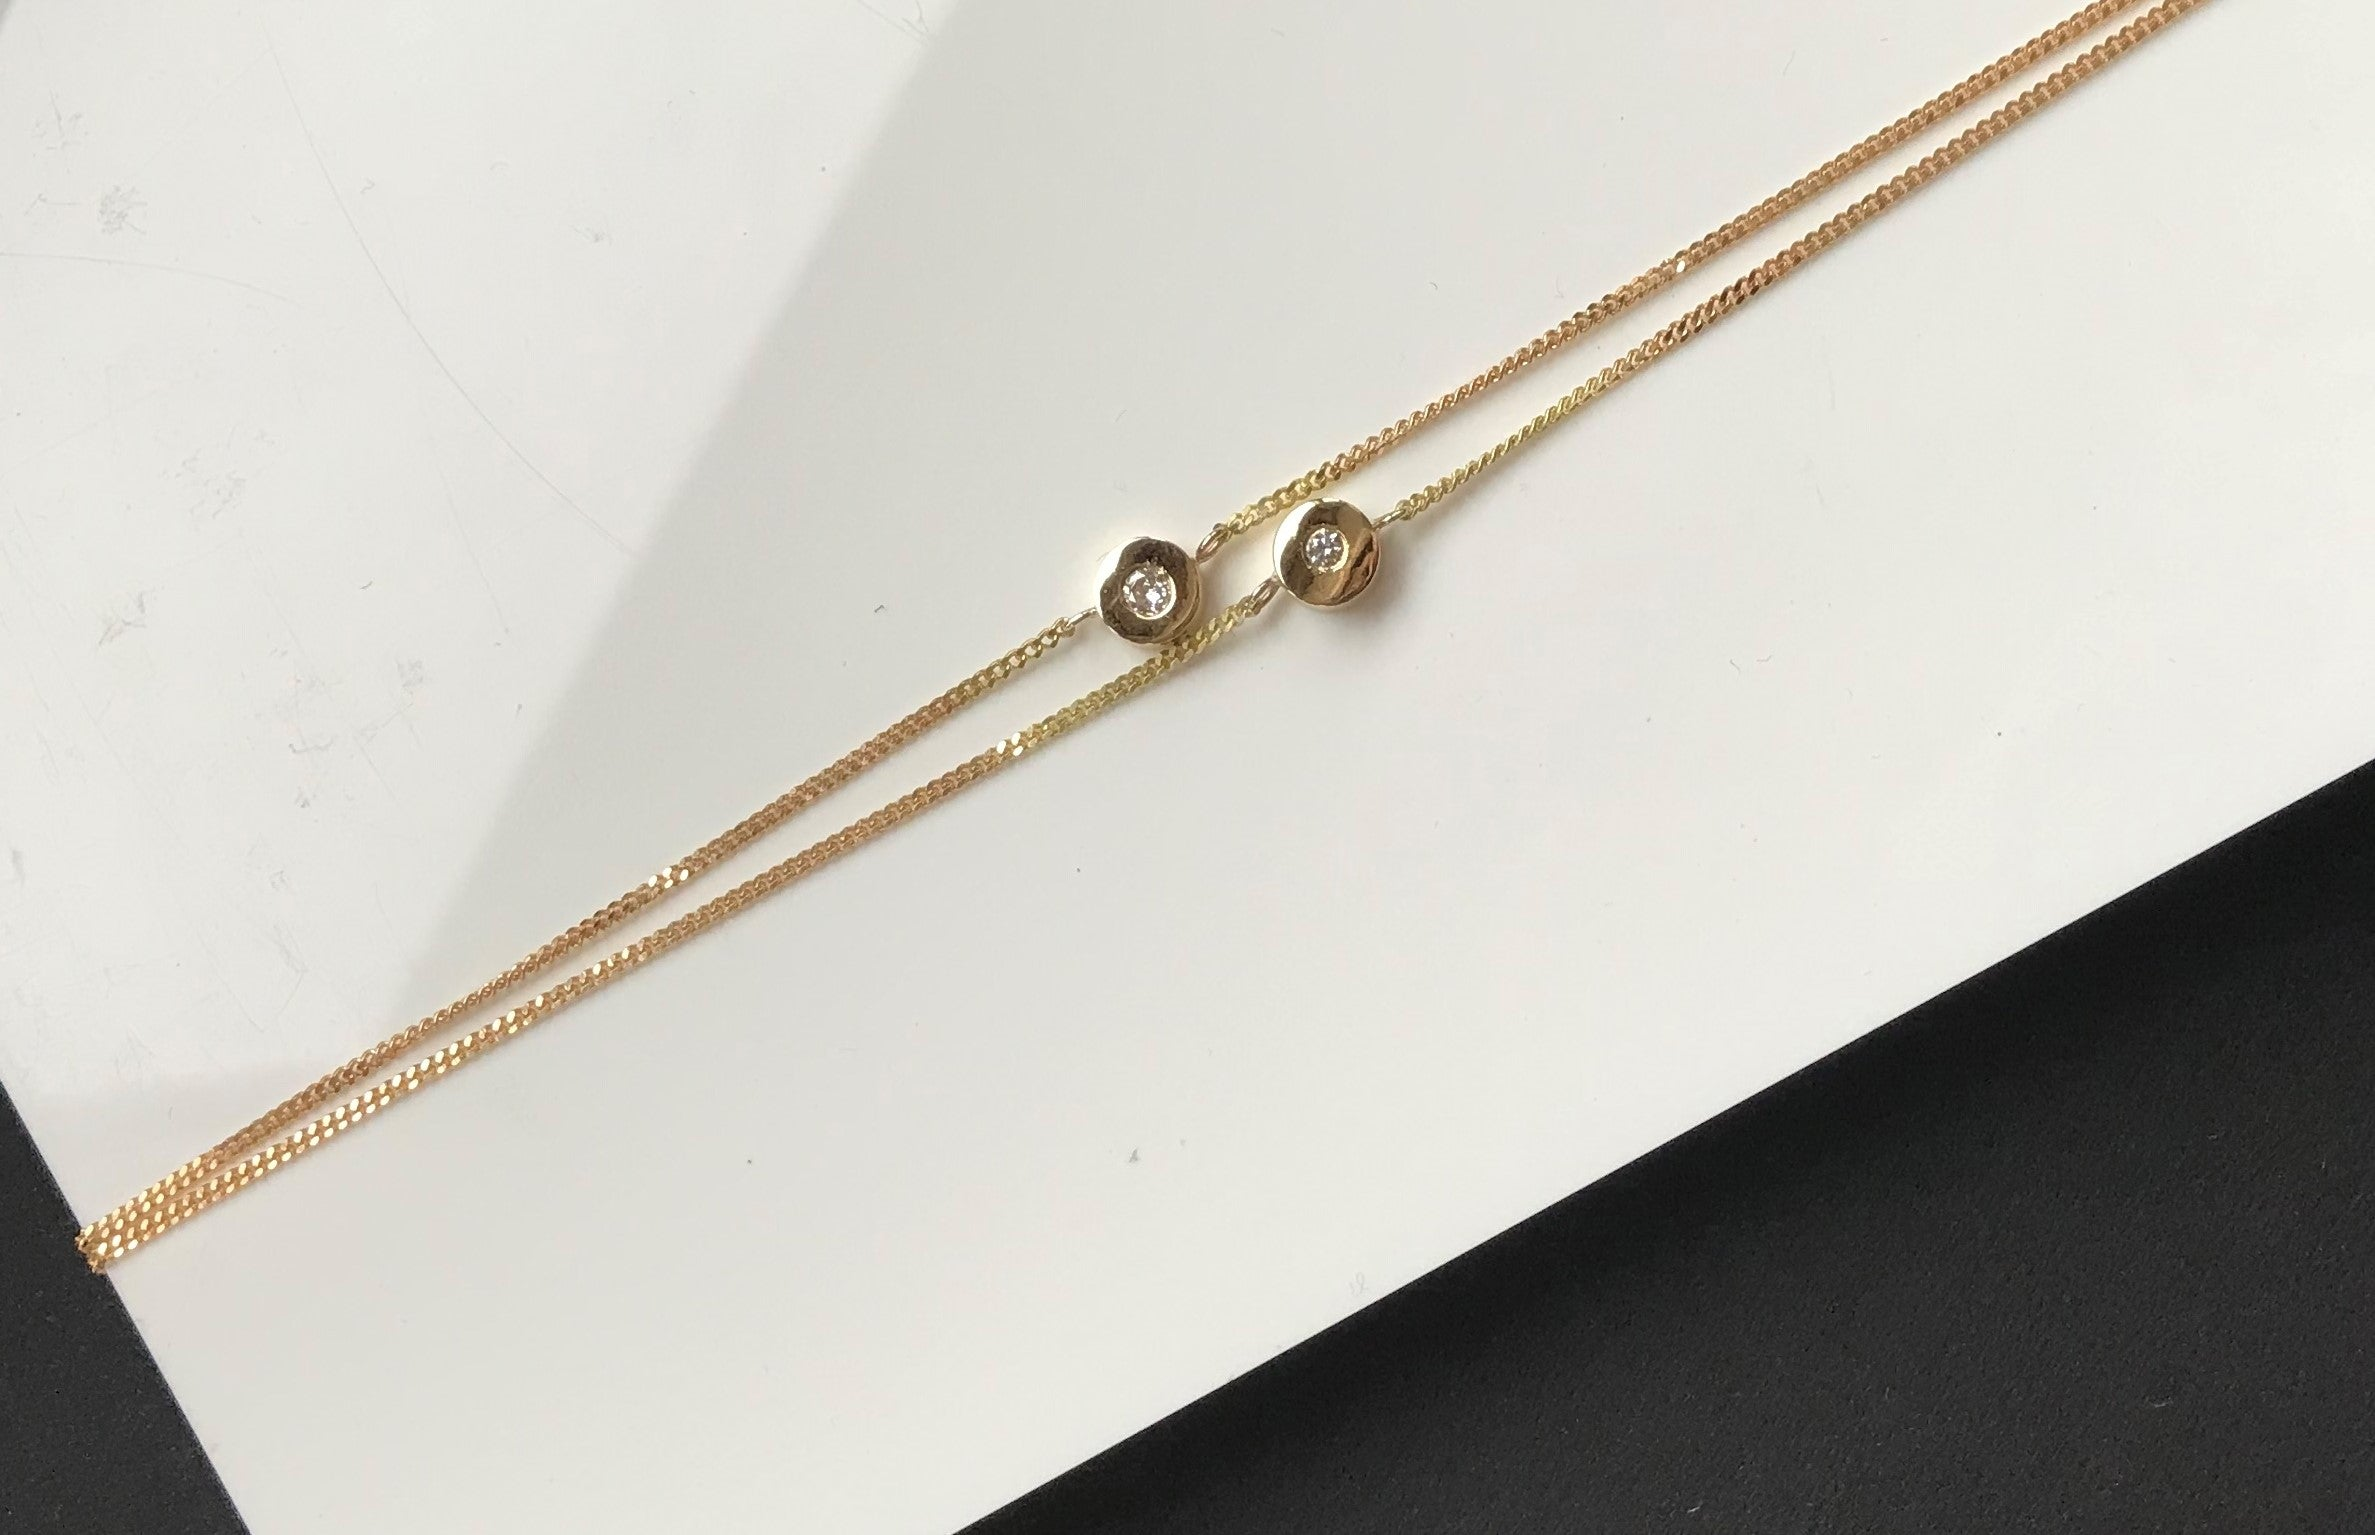 bespoke recycled gold and diamond bracelet